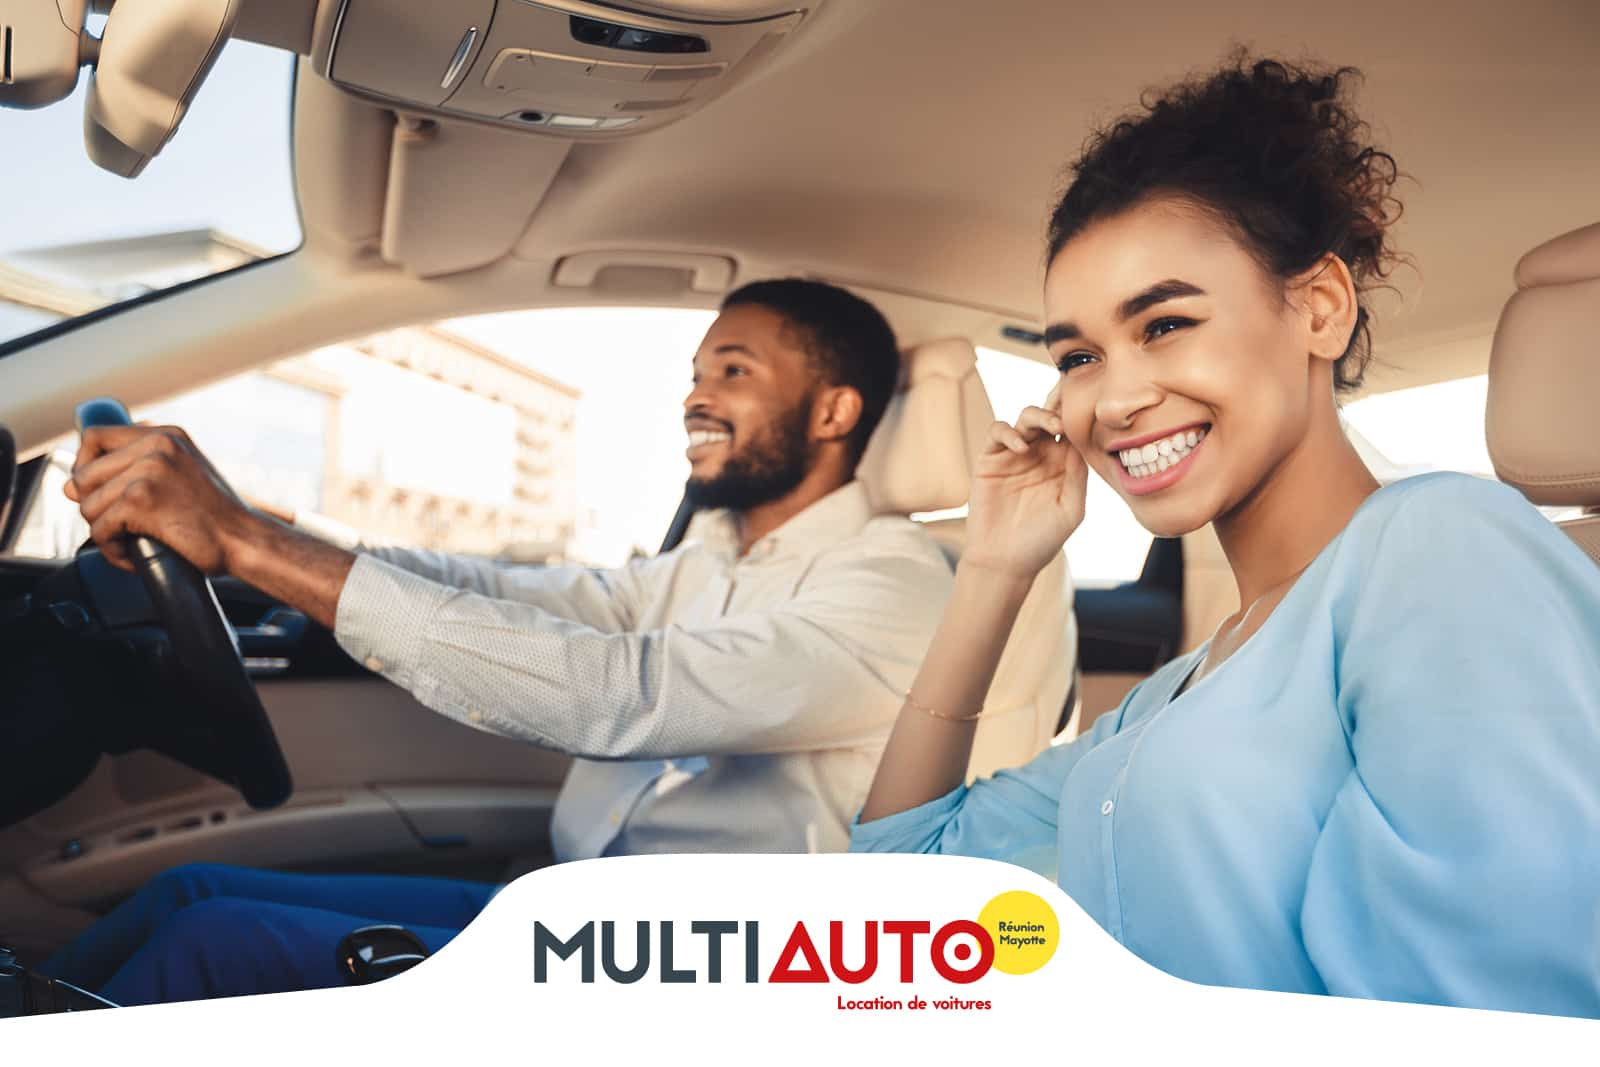 Car rental in La Réunion long-term rental for the holidays